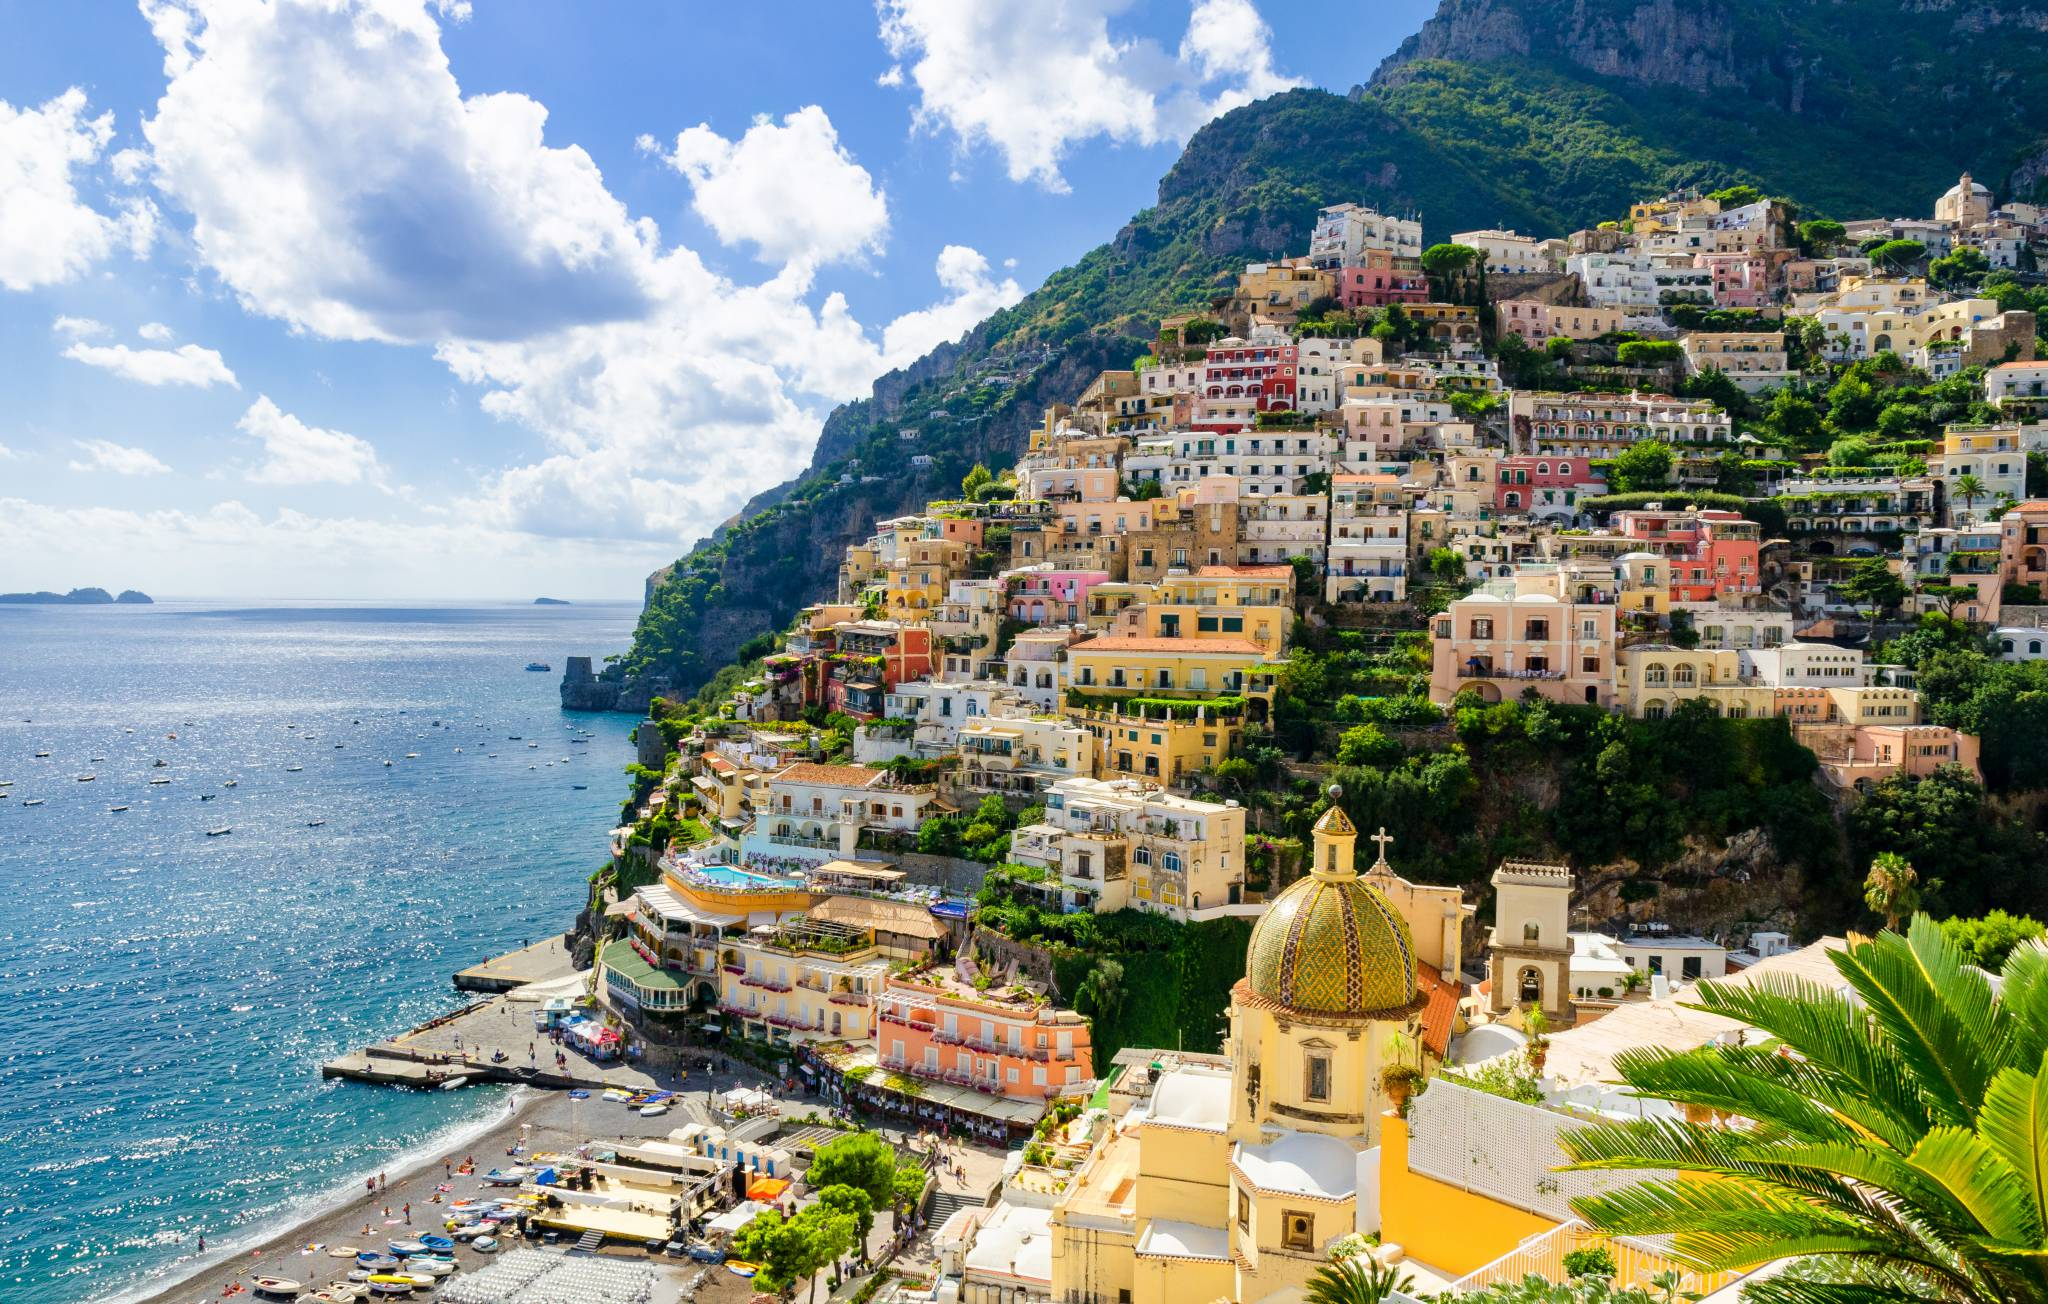 Travel to Amalfi Coast with eTips Travel Guides